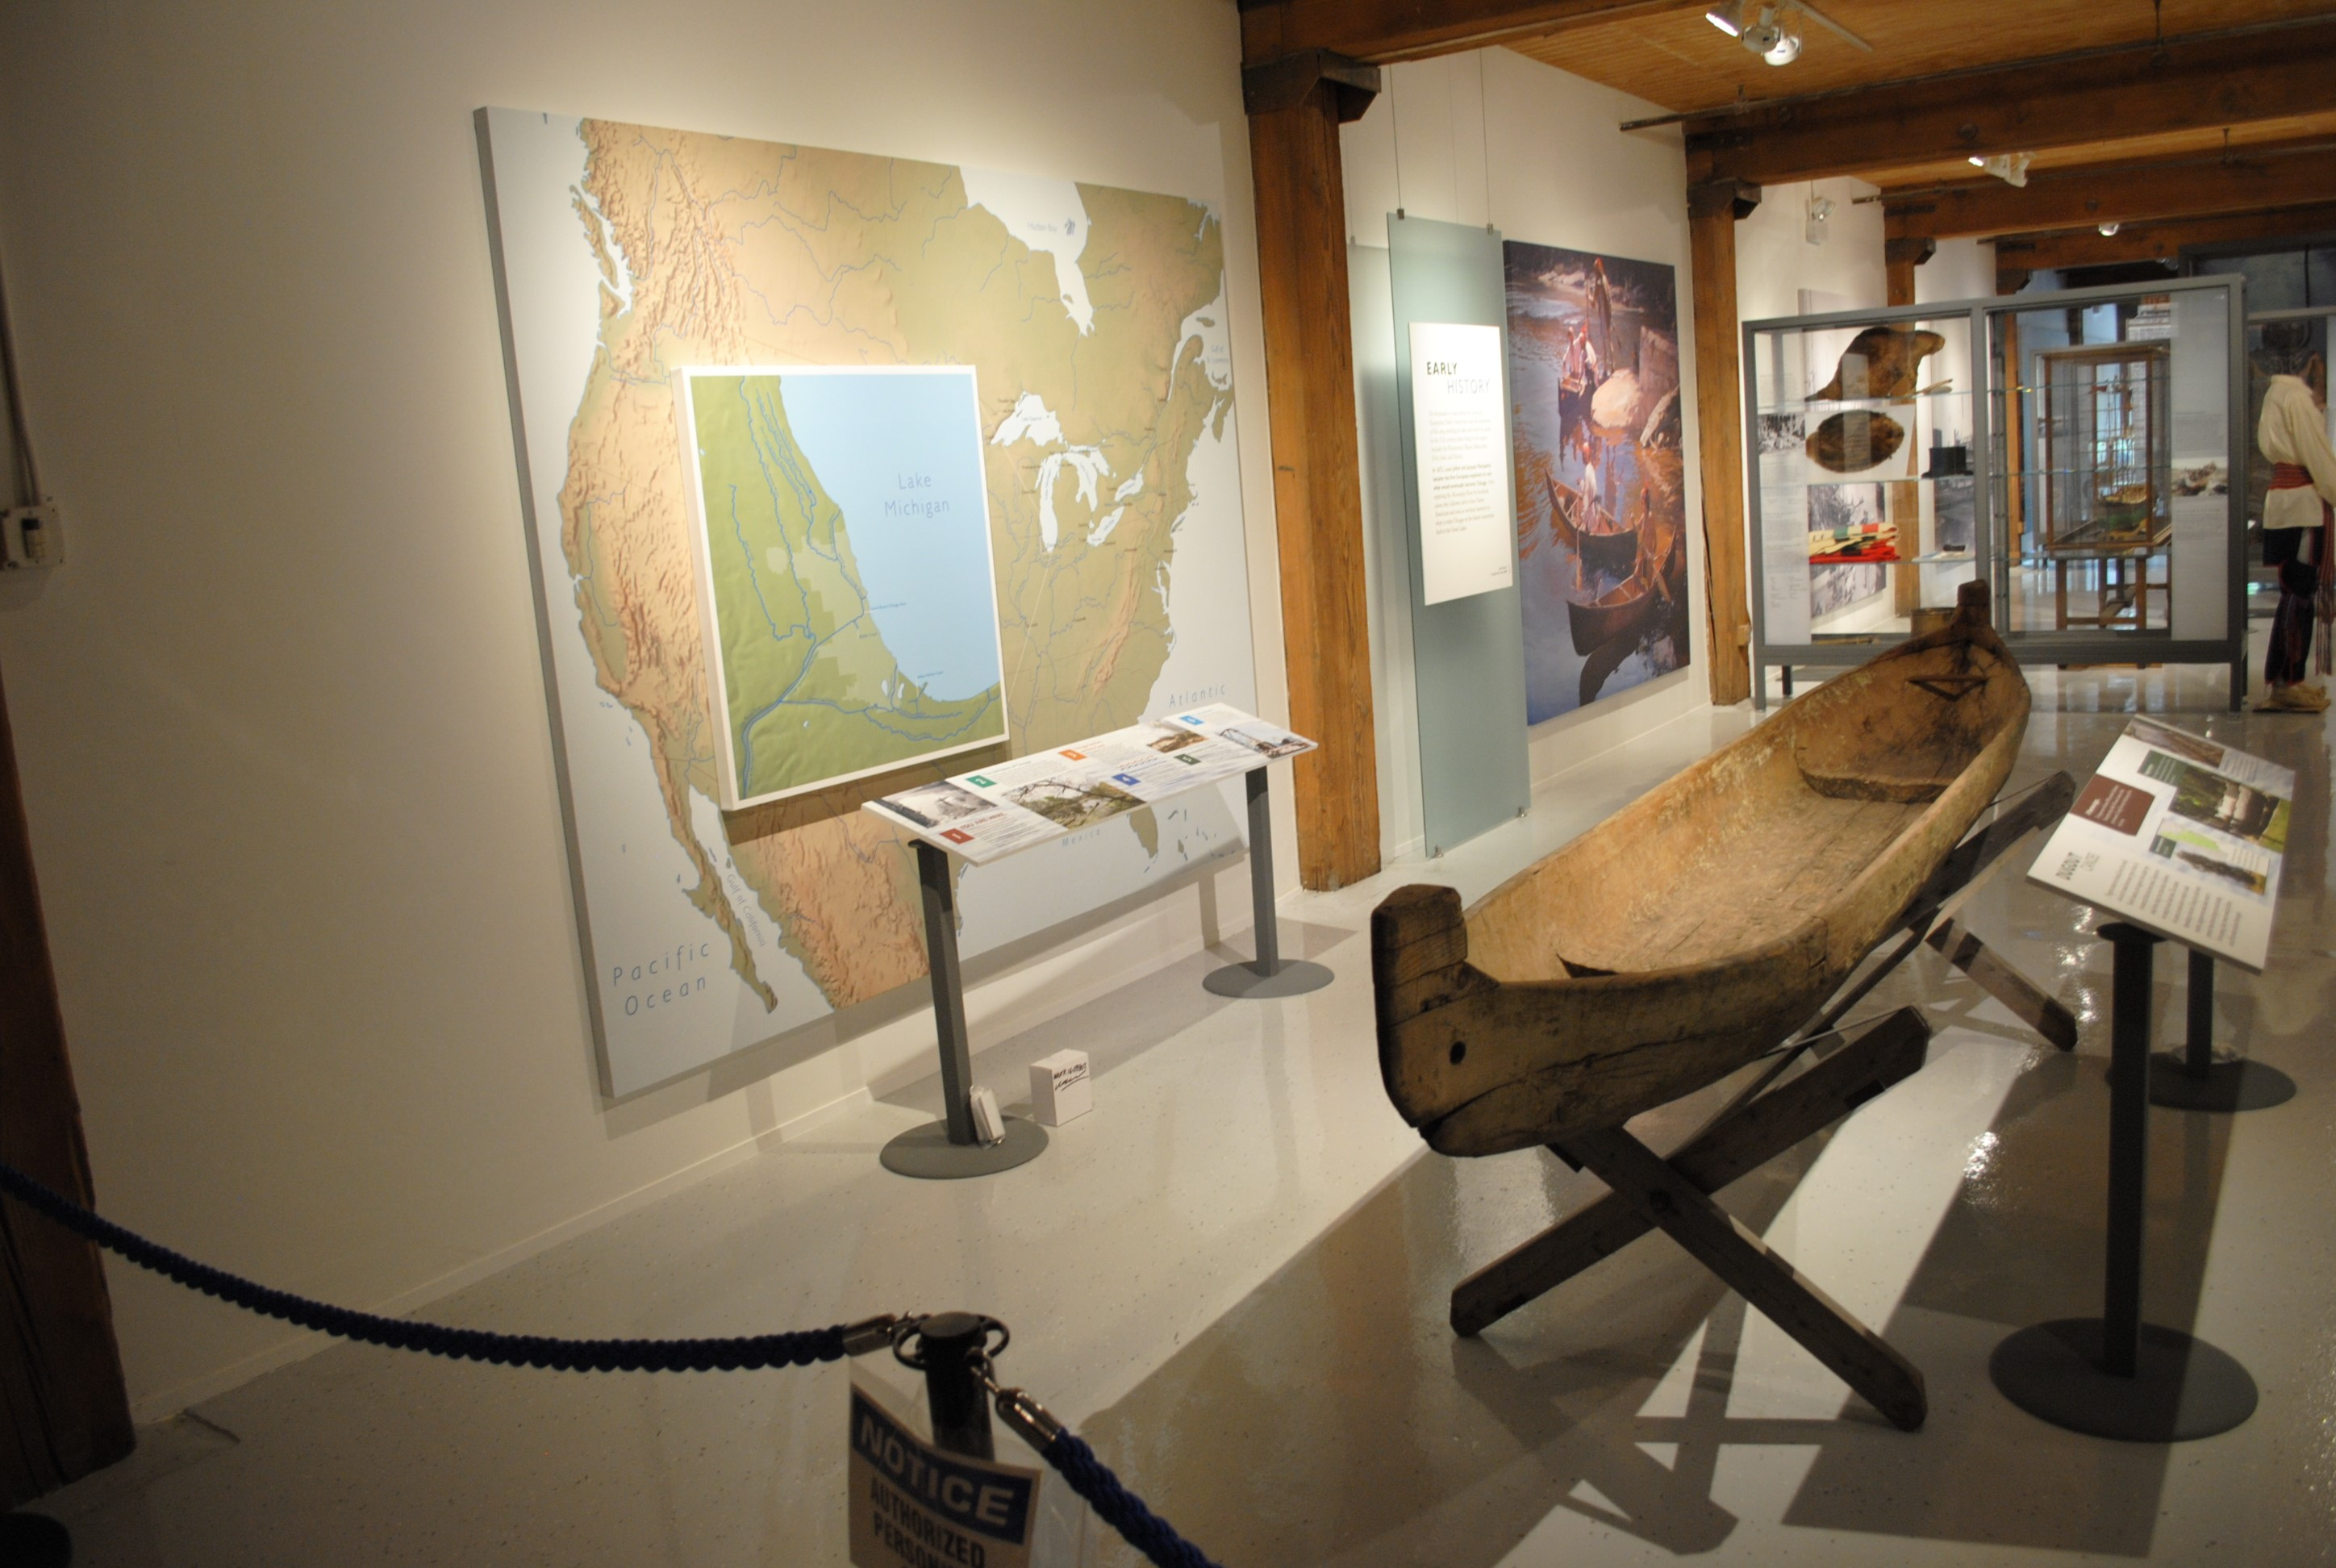 The museum traces the history of Chicago's waterways, from its use by Native Americans and fur traders to today's recreational boaters. Image courtesy of the Chicago Maritime Museum.